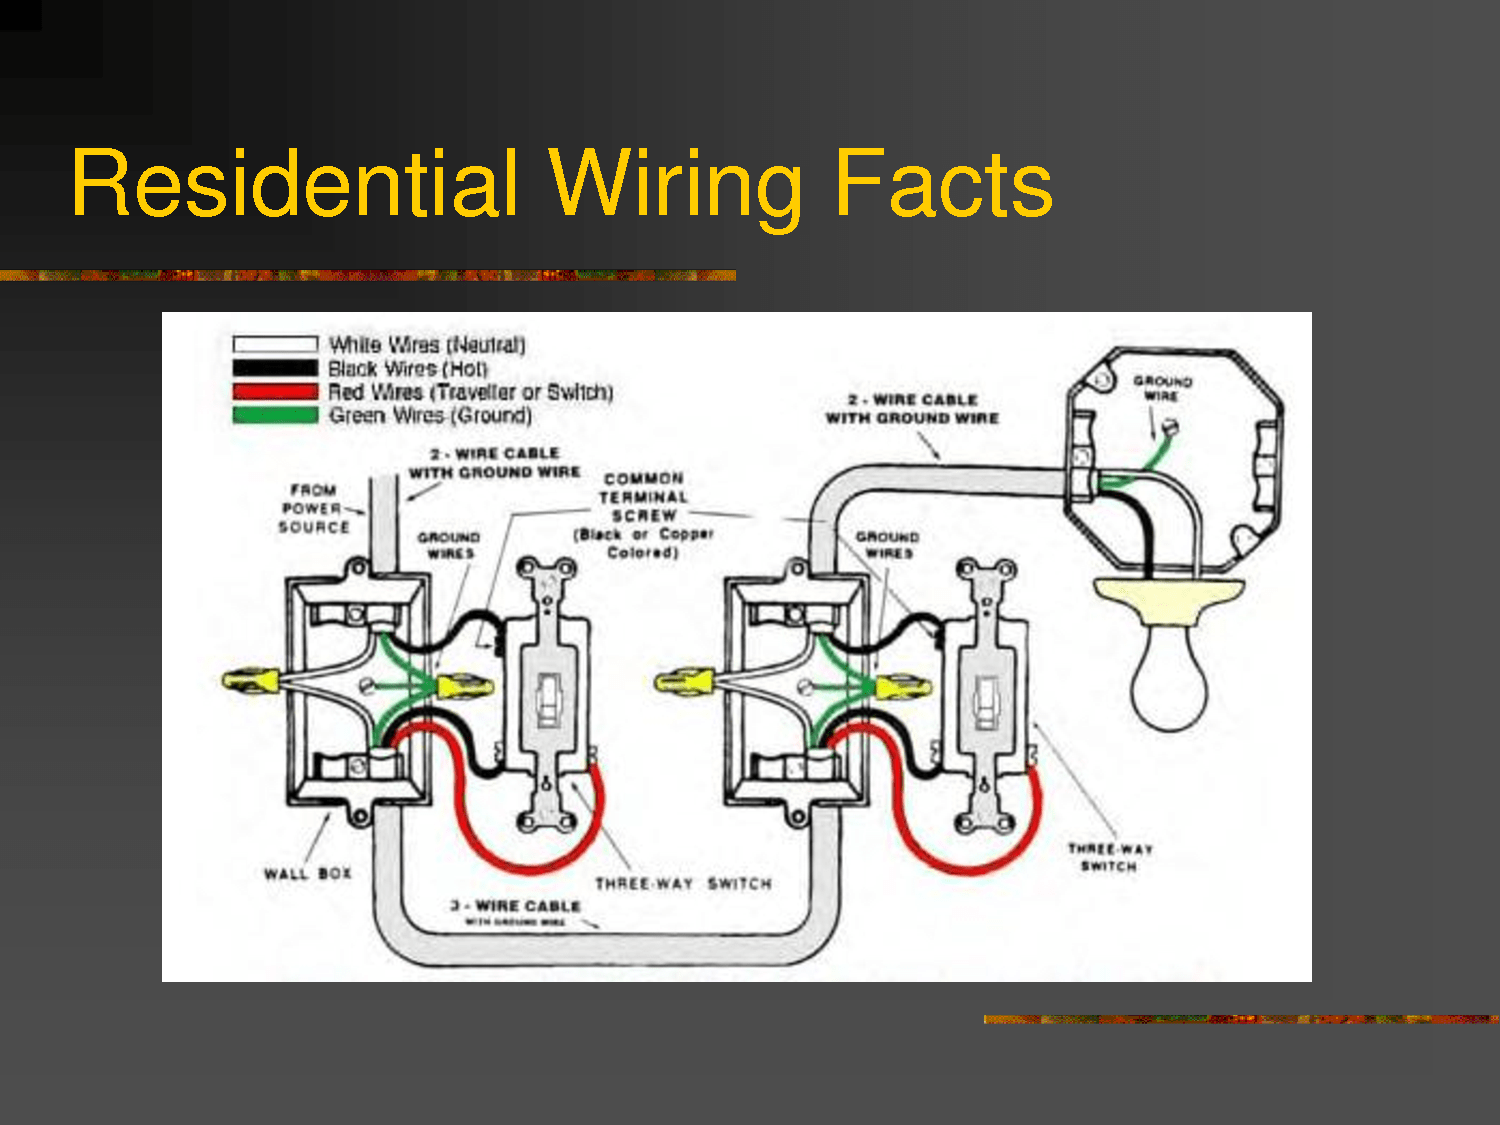 Simple Auto Wiring Diagram For Dummies Electrical Kenwood Model Kdc 122 Color 4 Best Images Of Residential Diagrams